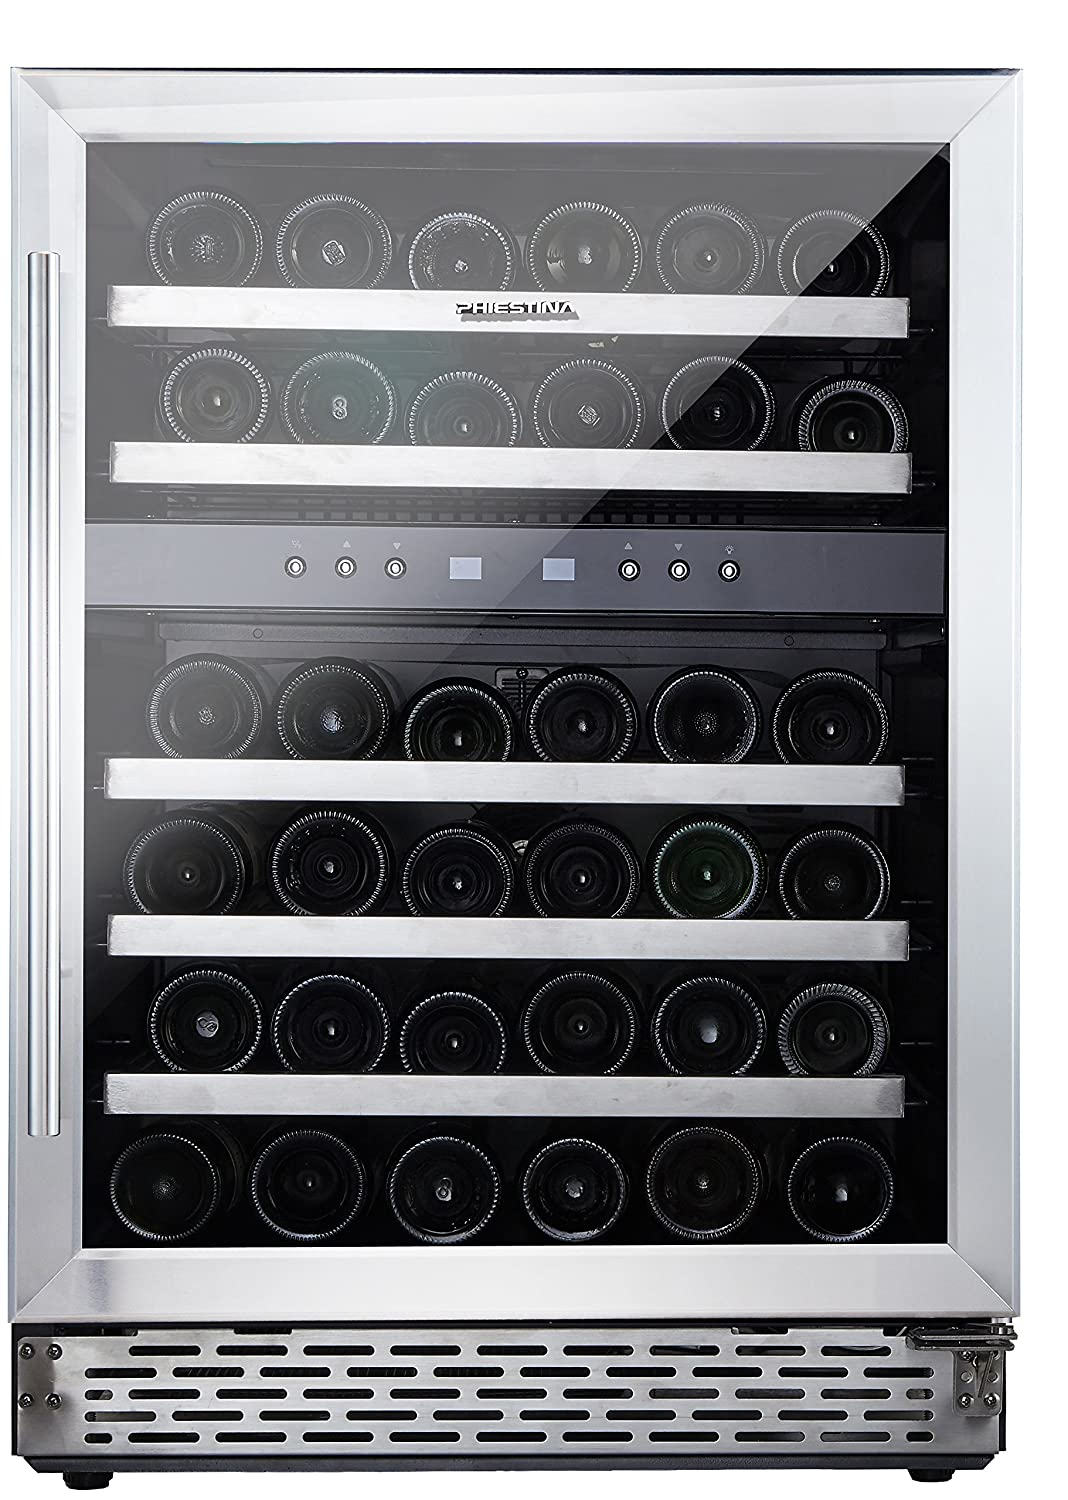 phiestina Phiestina 24'' Built-in or Free-standing 46 Bottle Wine Cooler Refrigerator. Pro Stainless Steel Frame & Door, Handle. Sliding Racks. Compressor Cooling with Press Button Temperature Setting